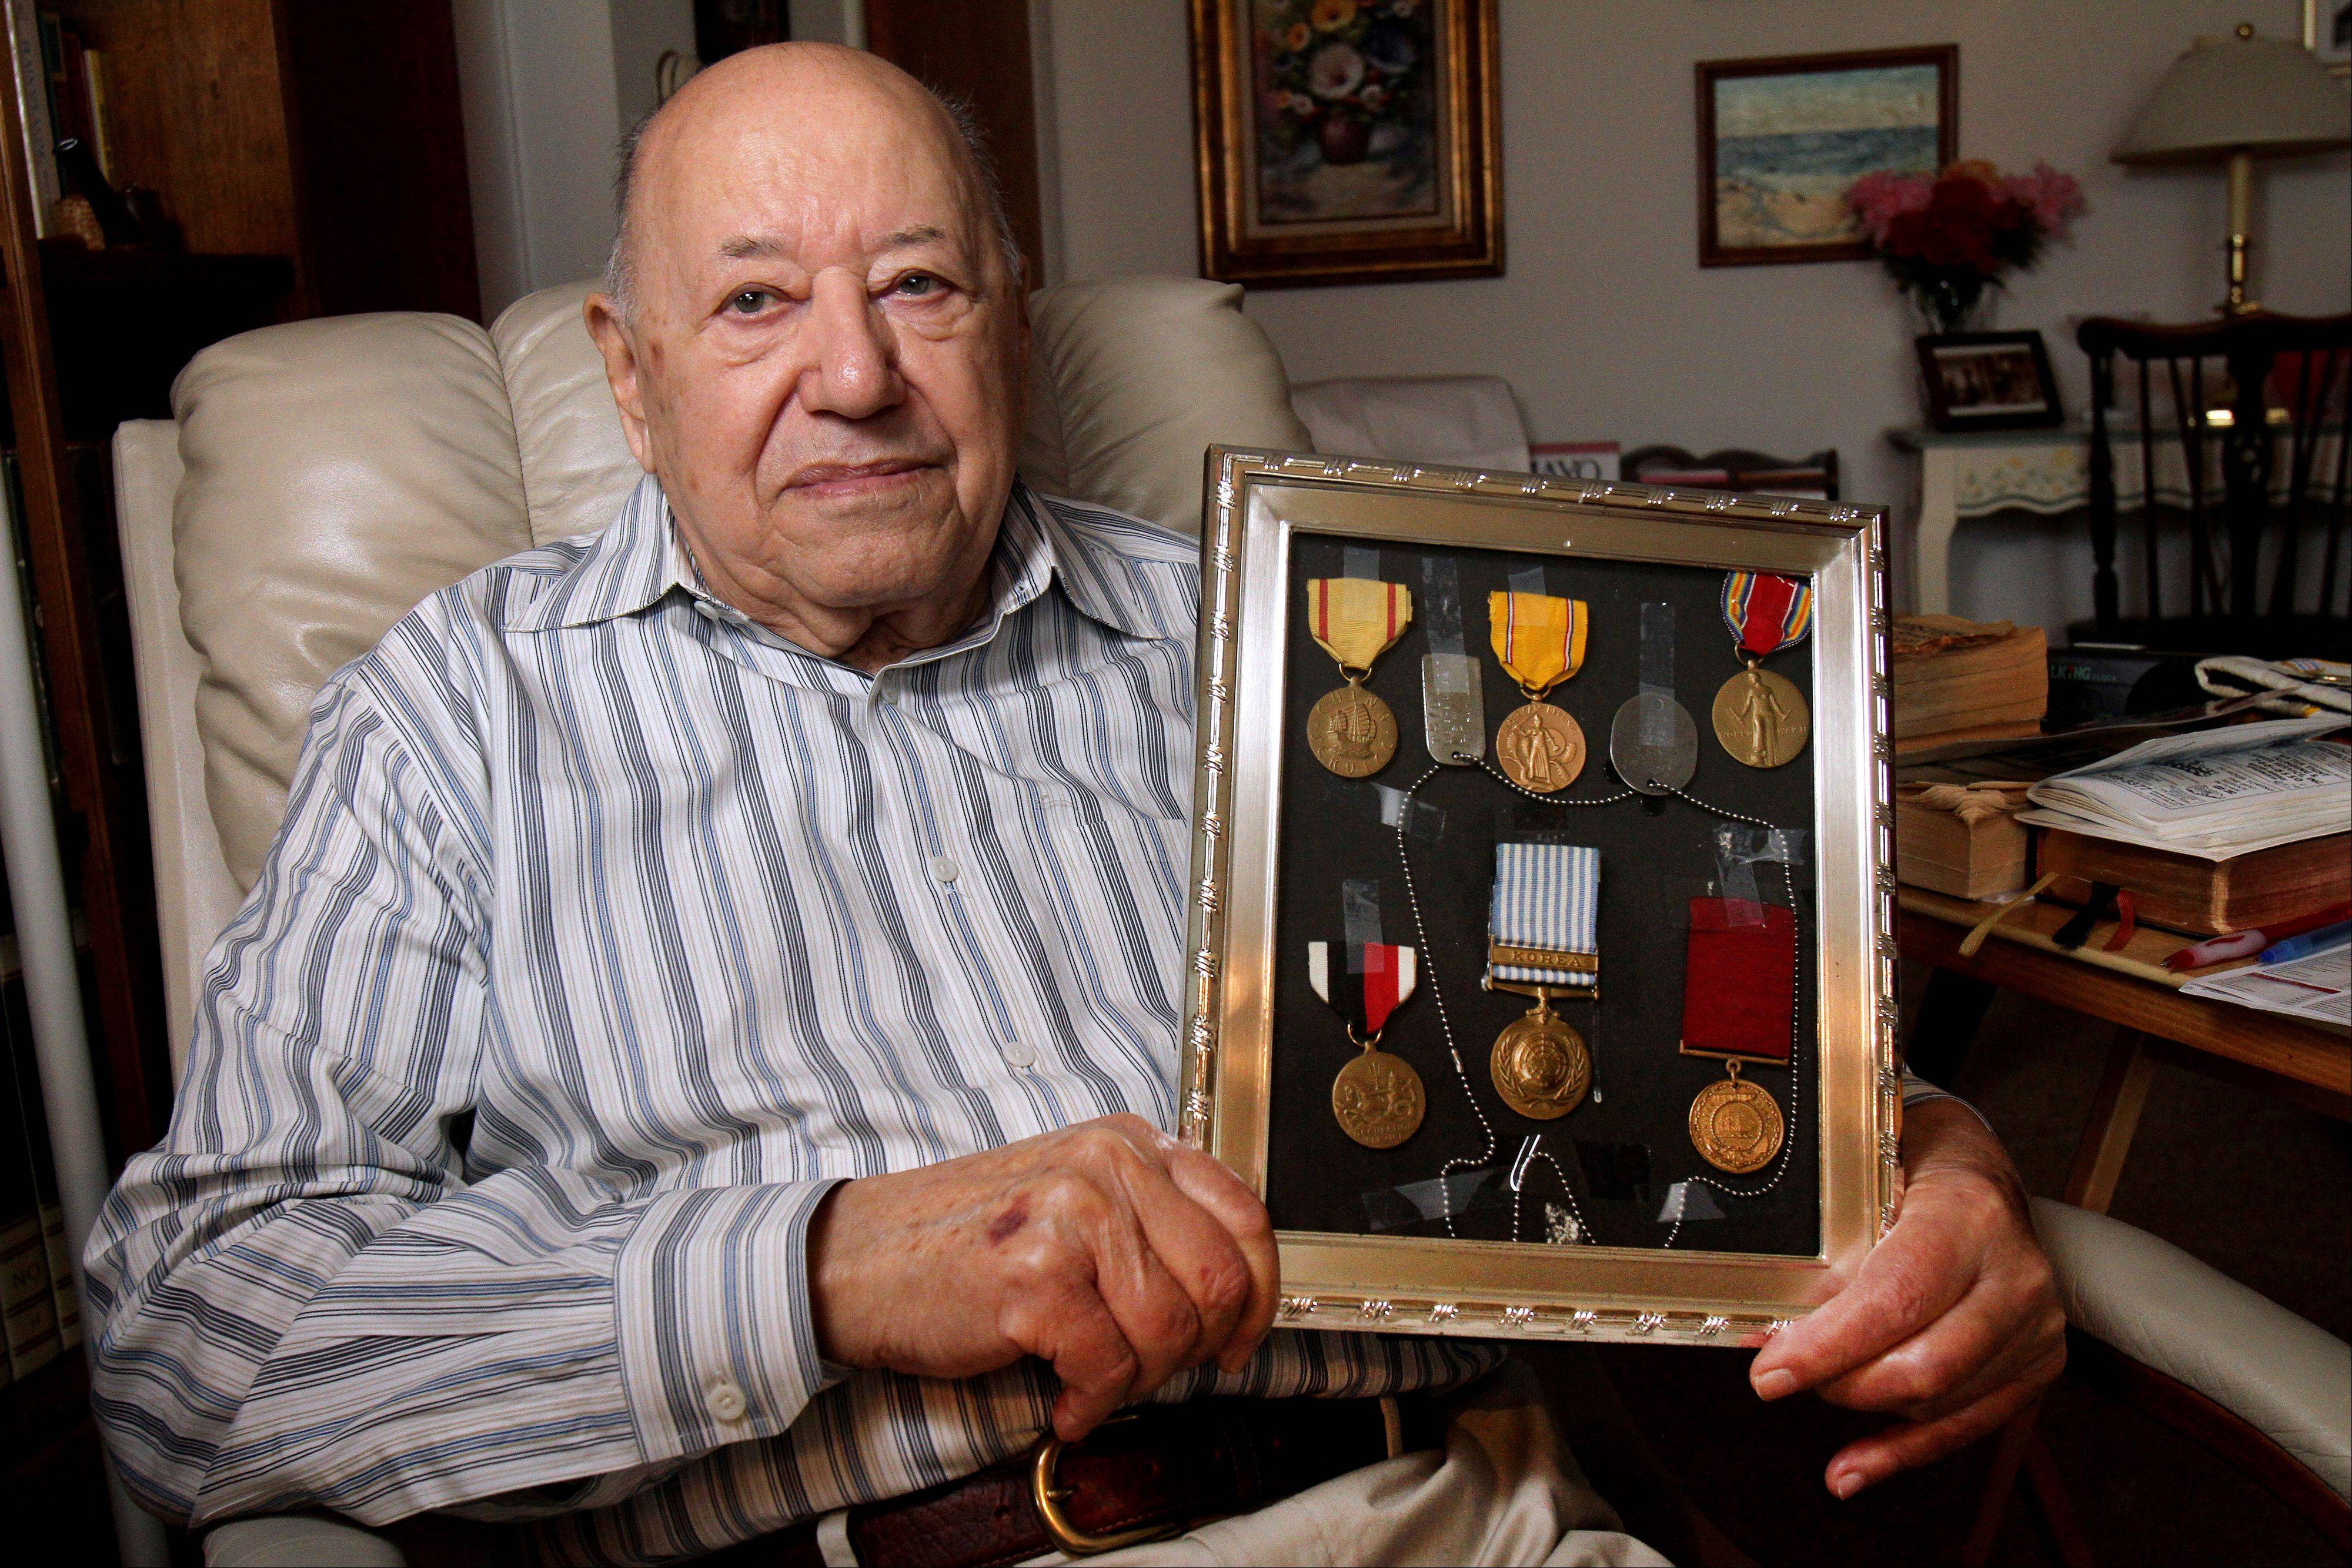 Pearl Harbor attack survivor Joe Triolo, 92, of Waukegan holds medals he earned while serving in World War II and Korea. Triolo will be on hand today at a Des Plaines event commemorating the 71st anniversary of the attack.